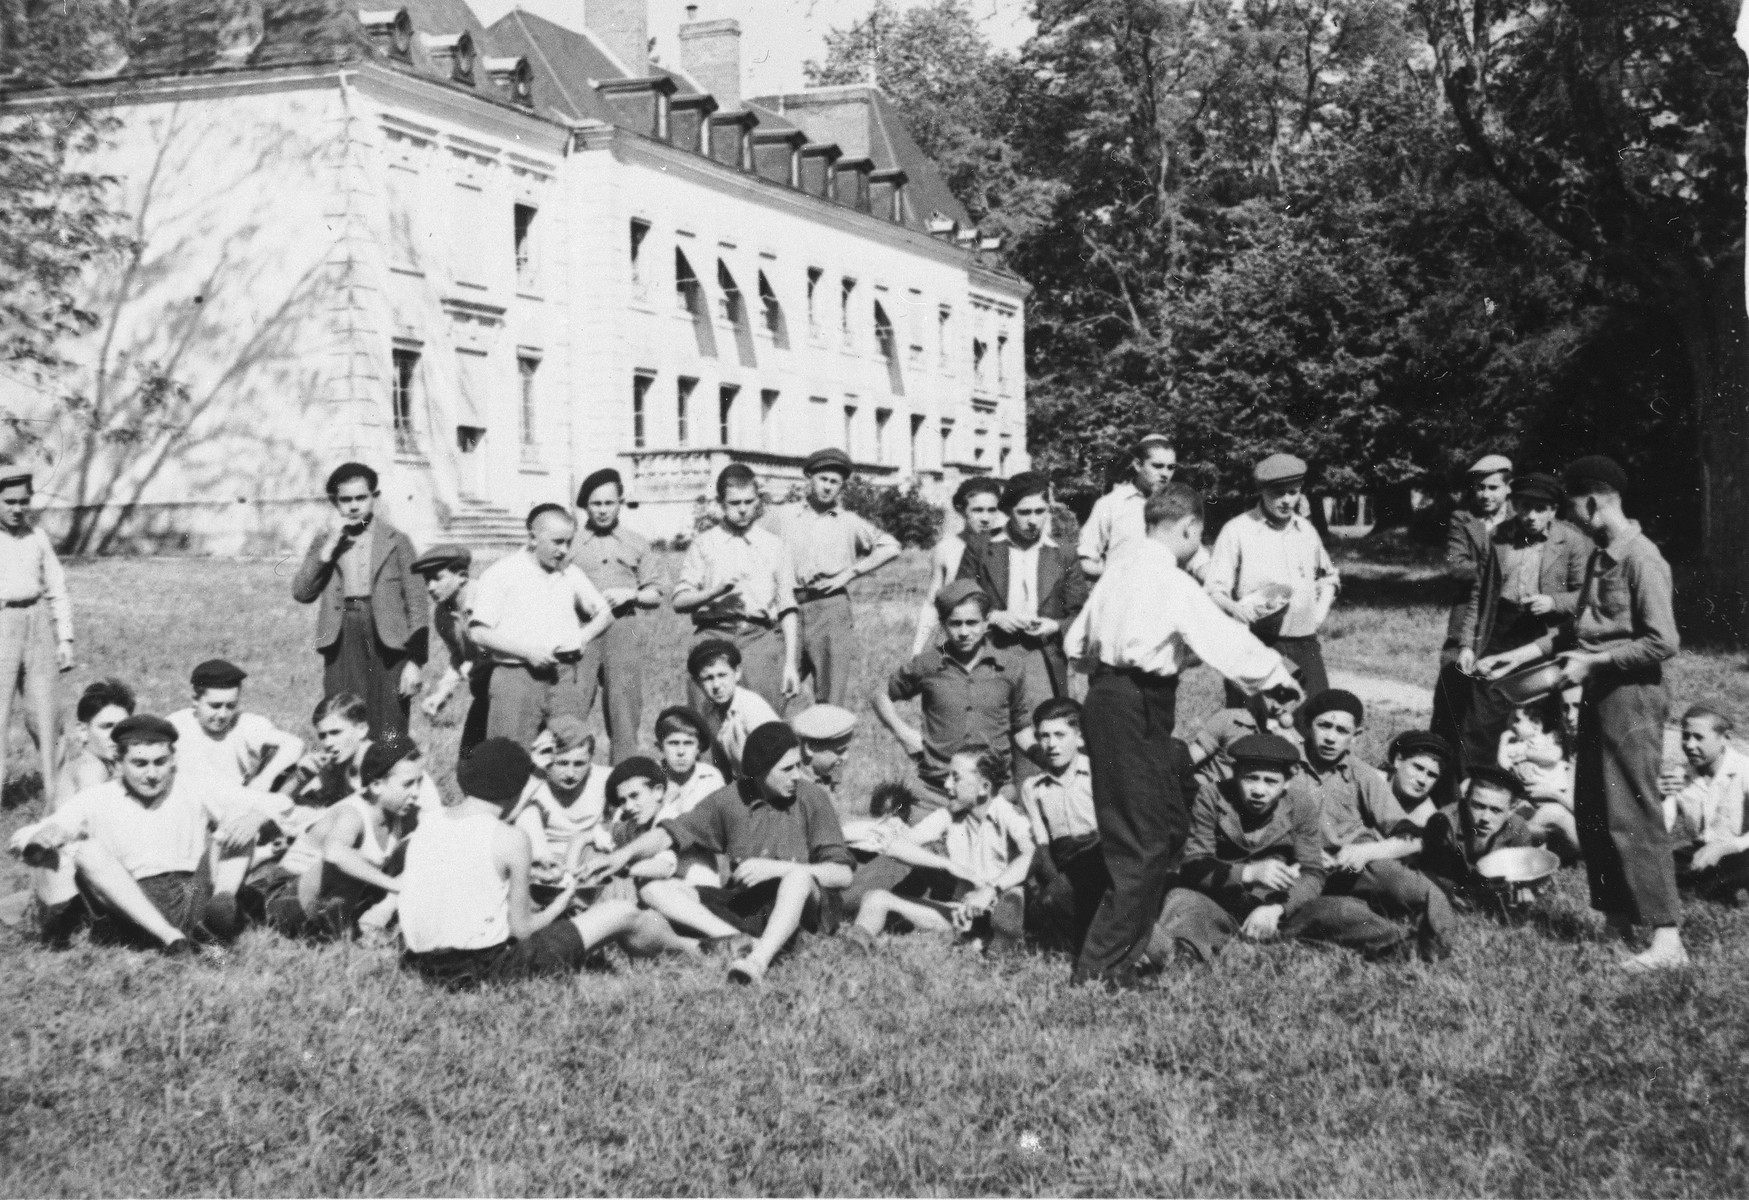 Jewish DP youth who numbered among the Buchenwald children, listen to a boy play the violin while sitting on the lawn at the Chateau d'Ambloy children's home in France, operated by the OSE (Oeuvre de Secours aux Enfants).